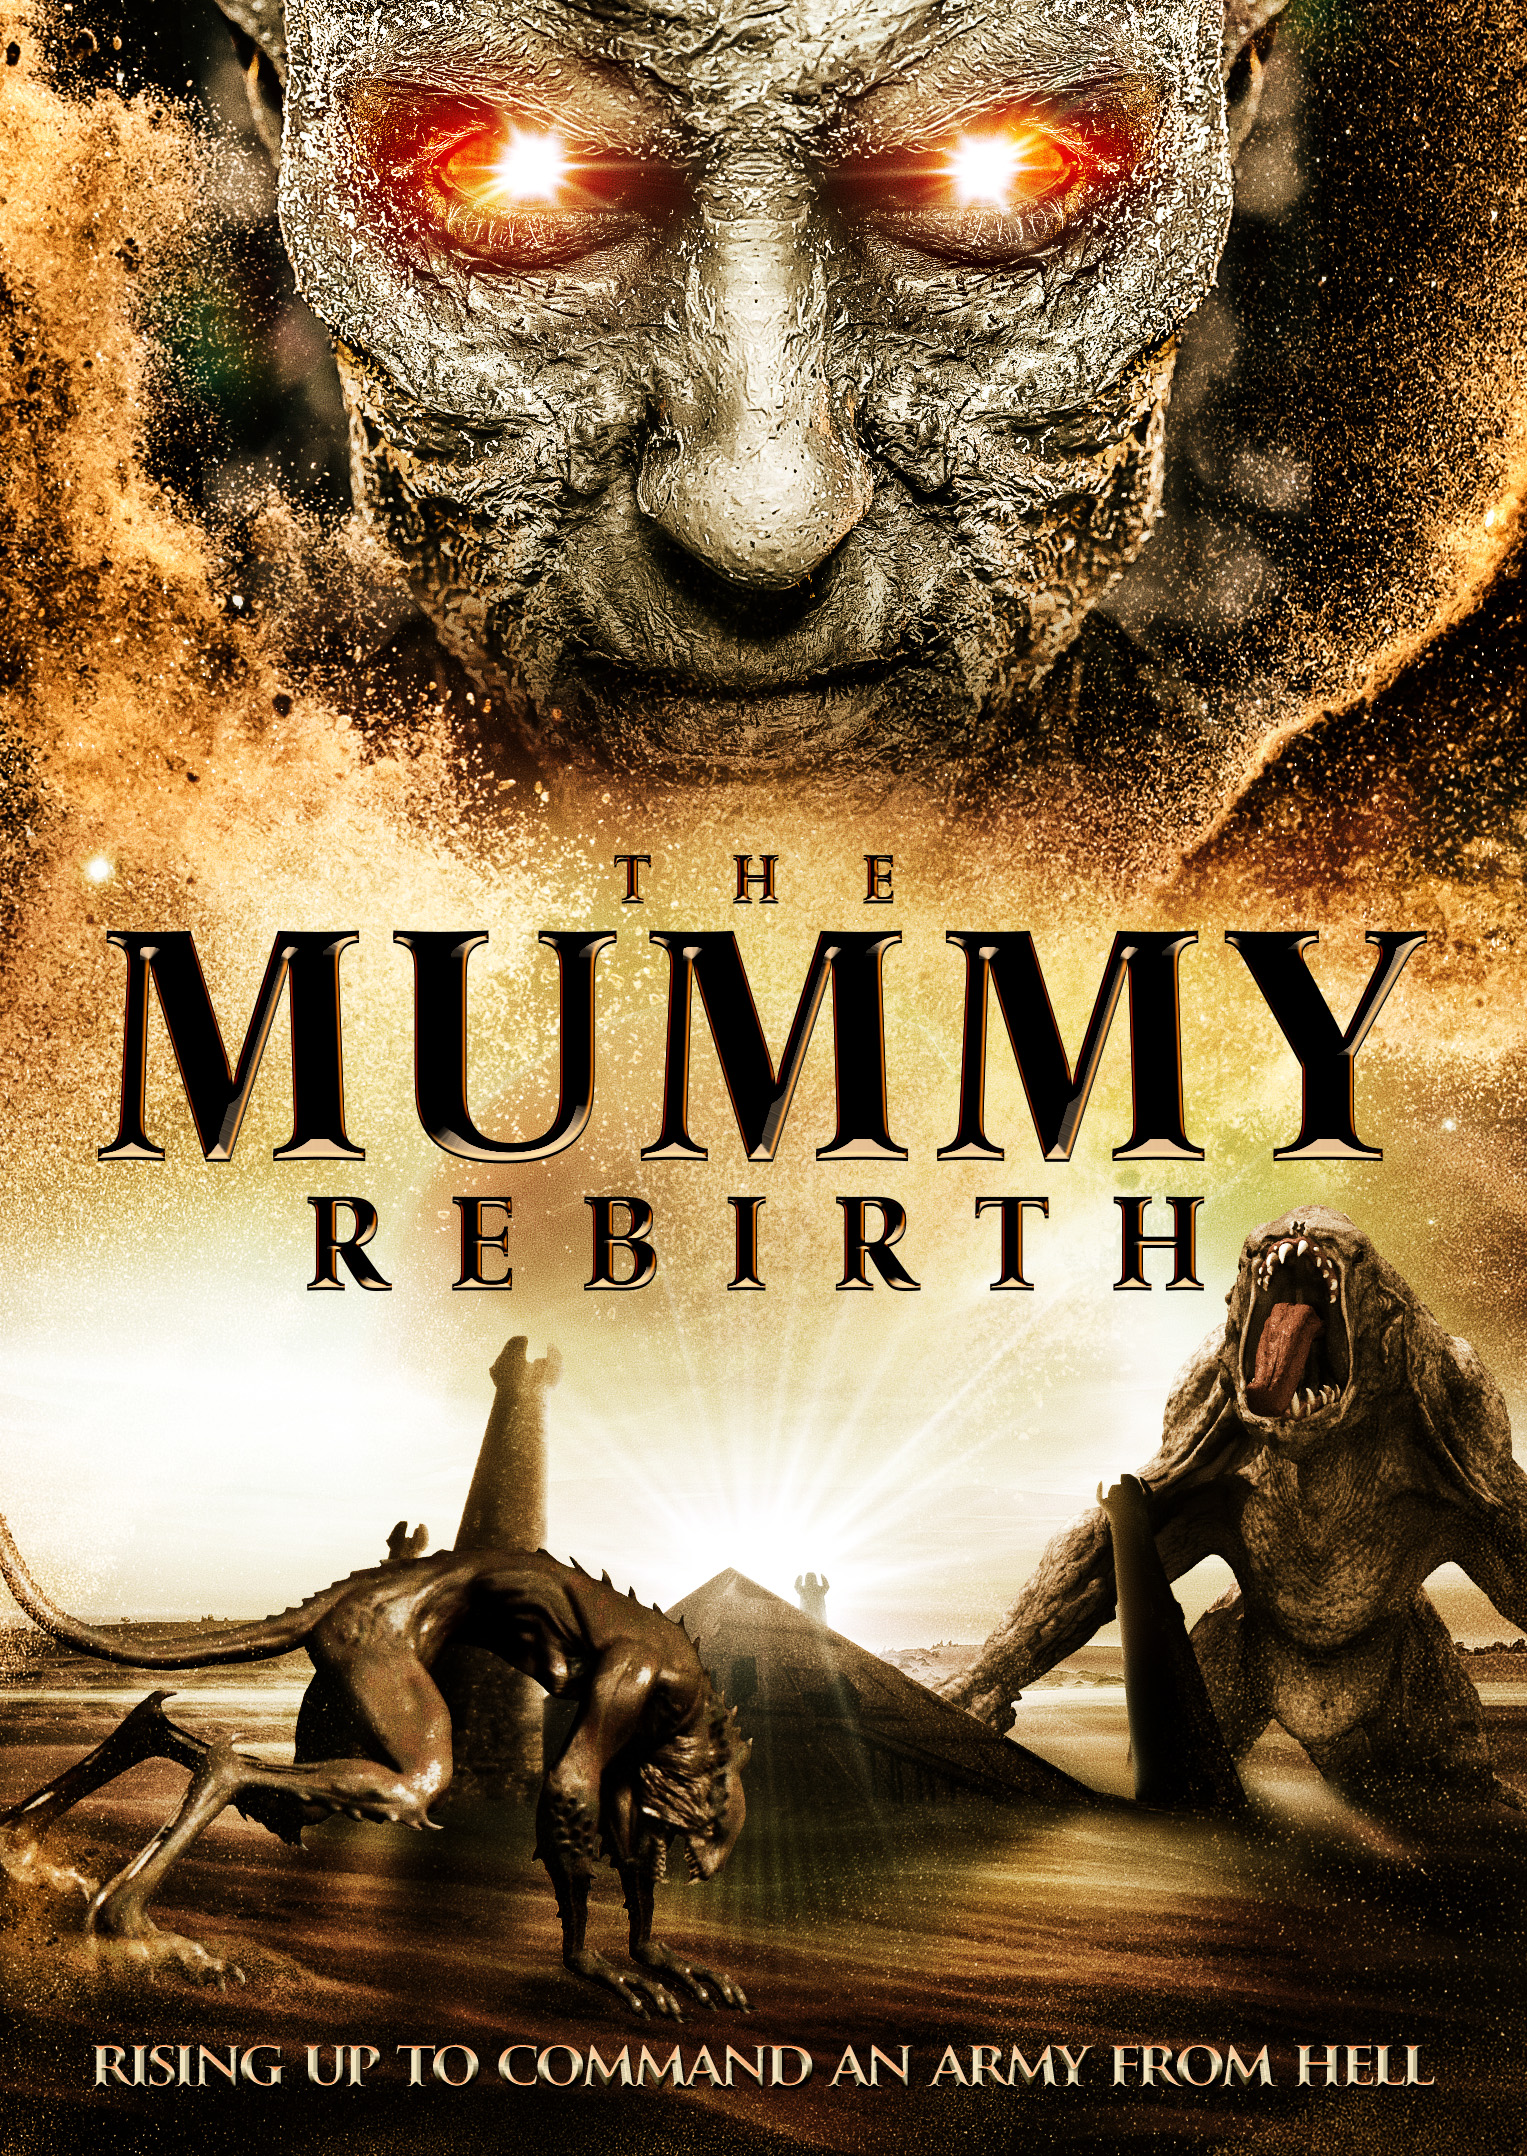 Film Review: THE MUMMY REBIRTH (2019)